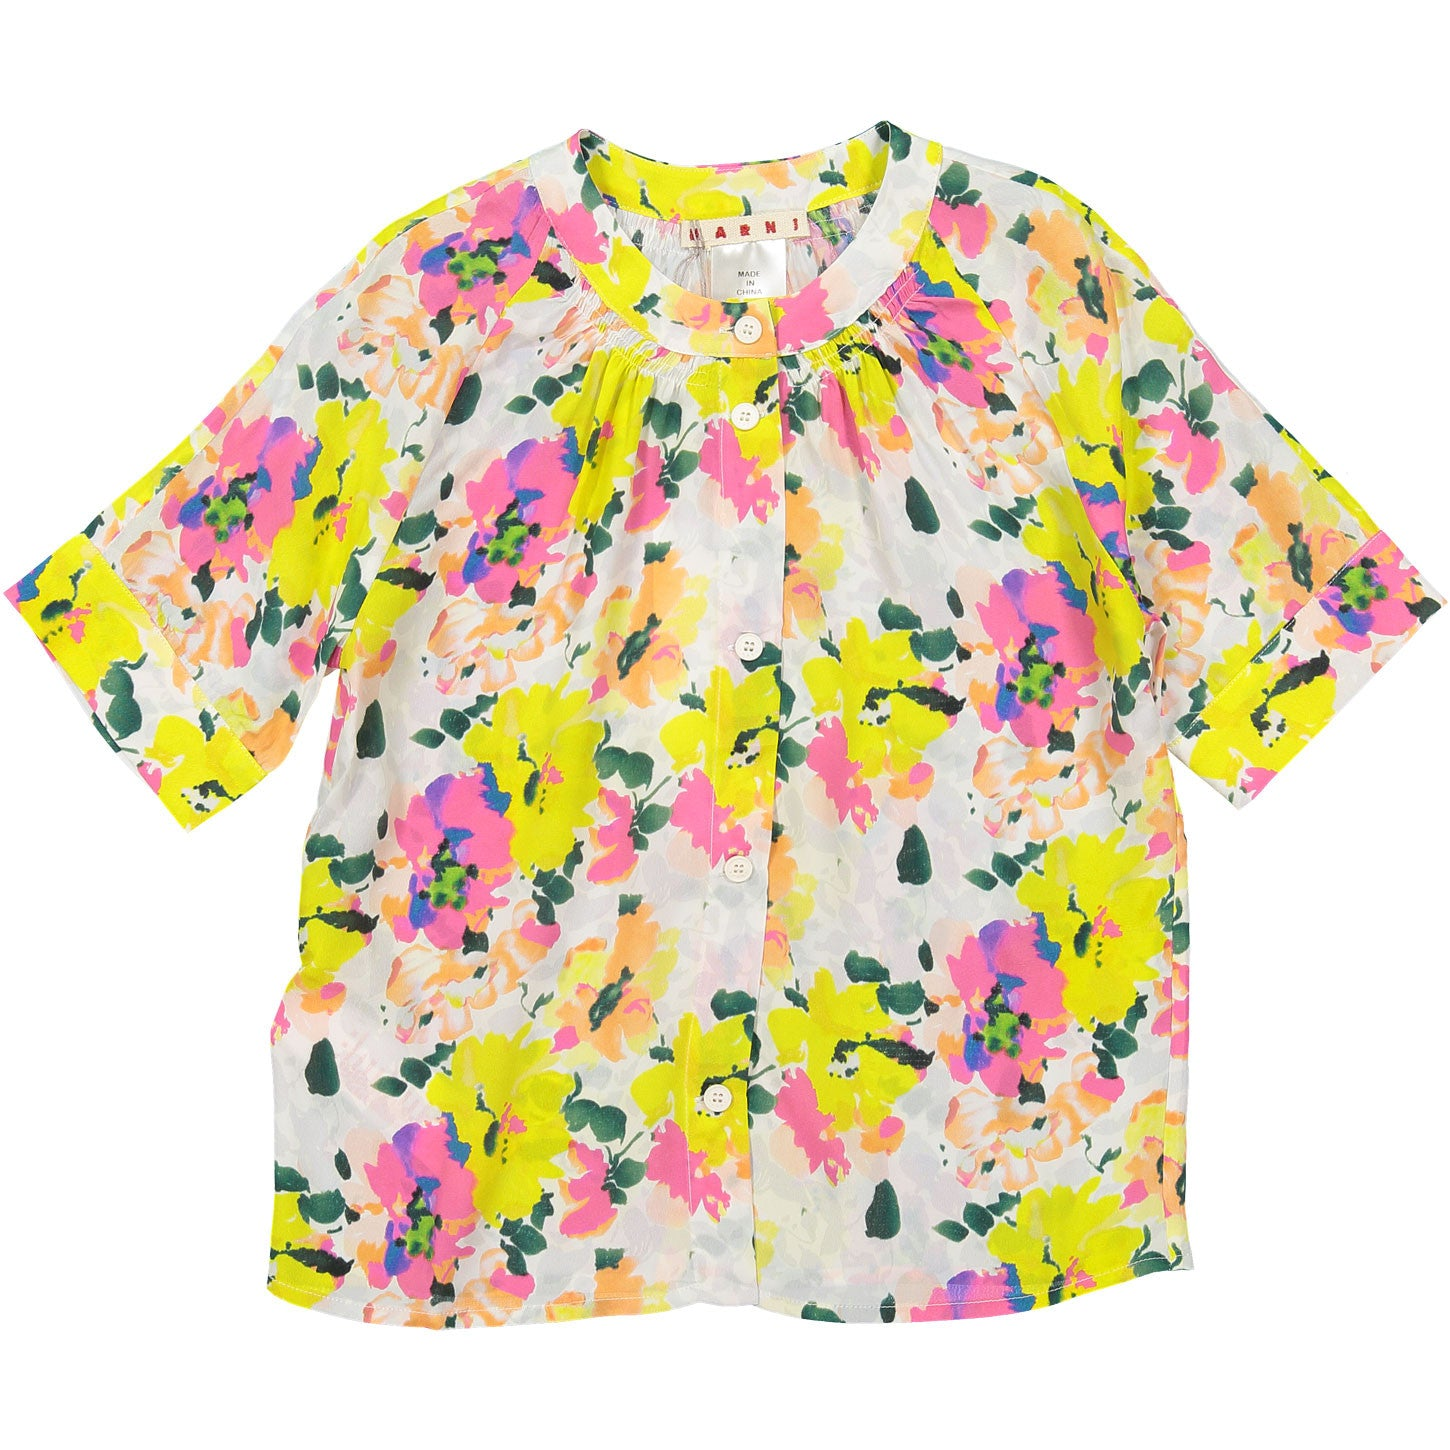 Marni Peach Bloom Silk Top - Ladida